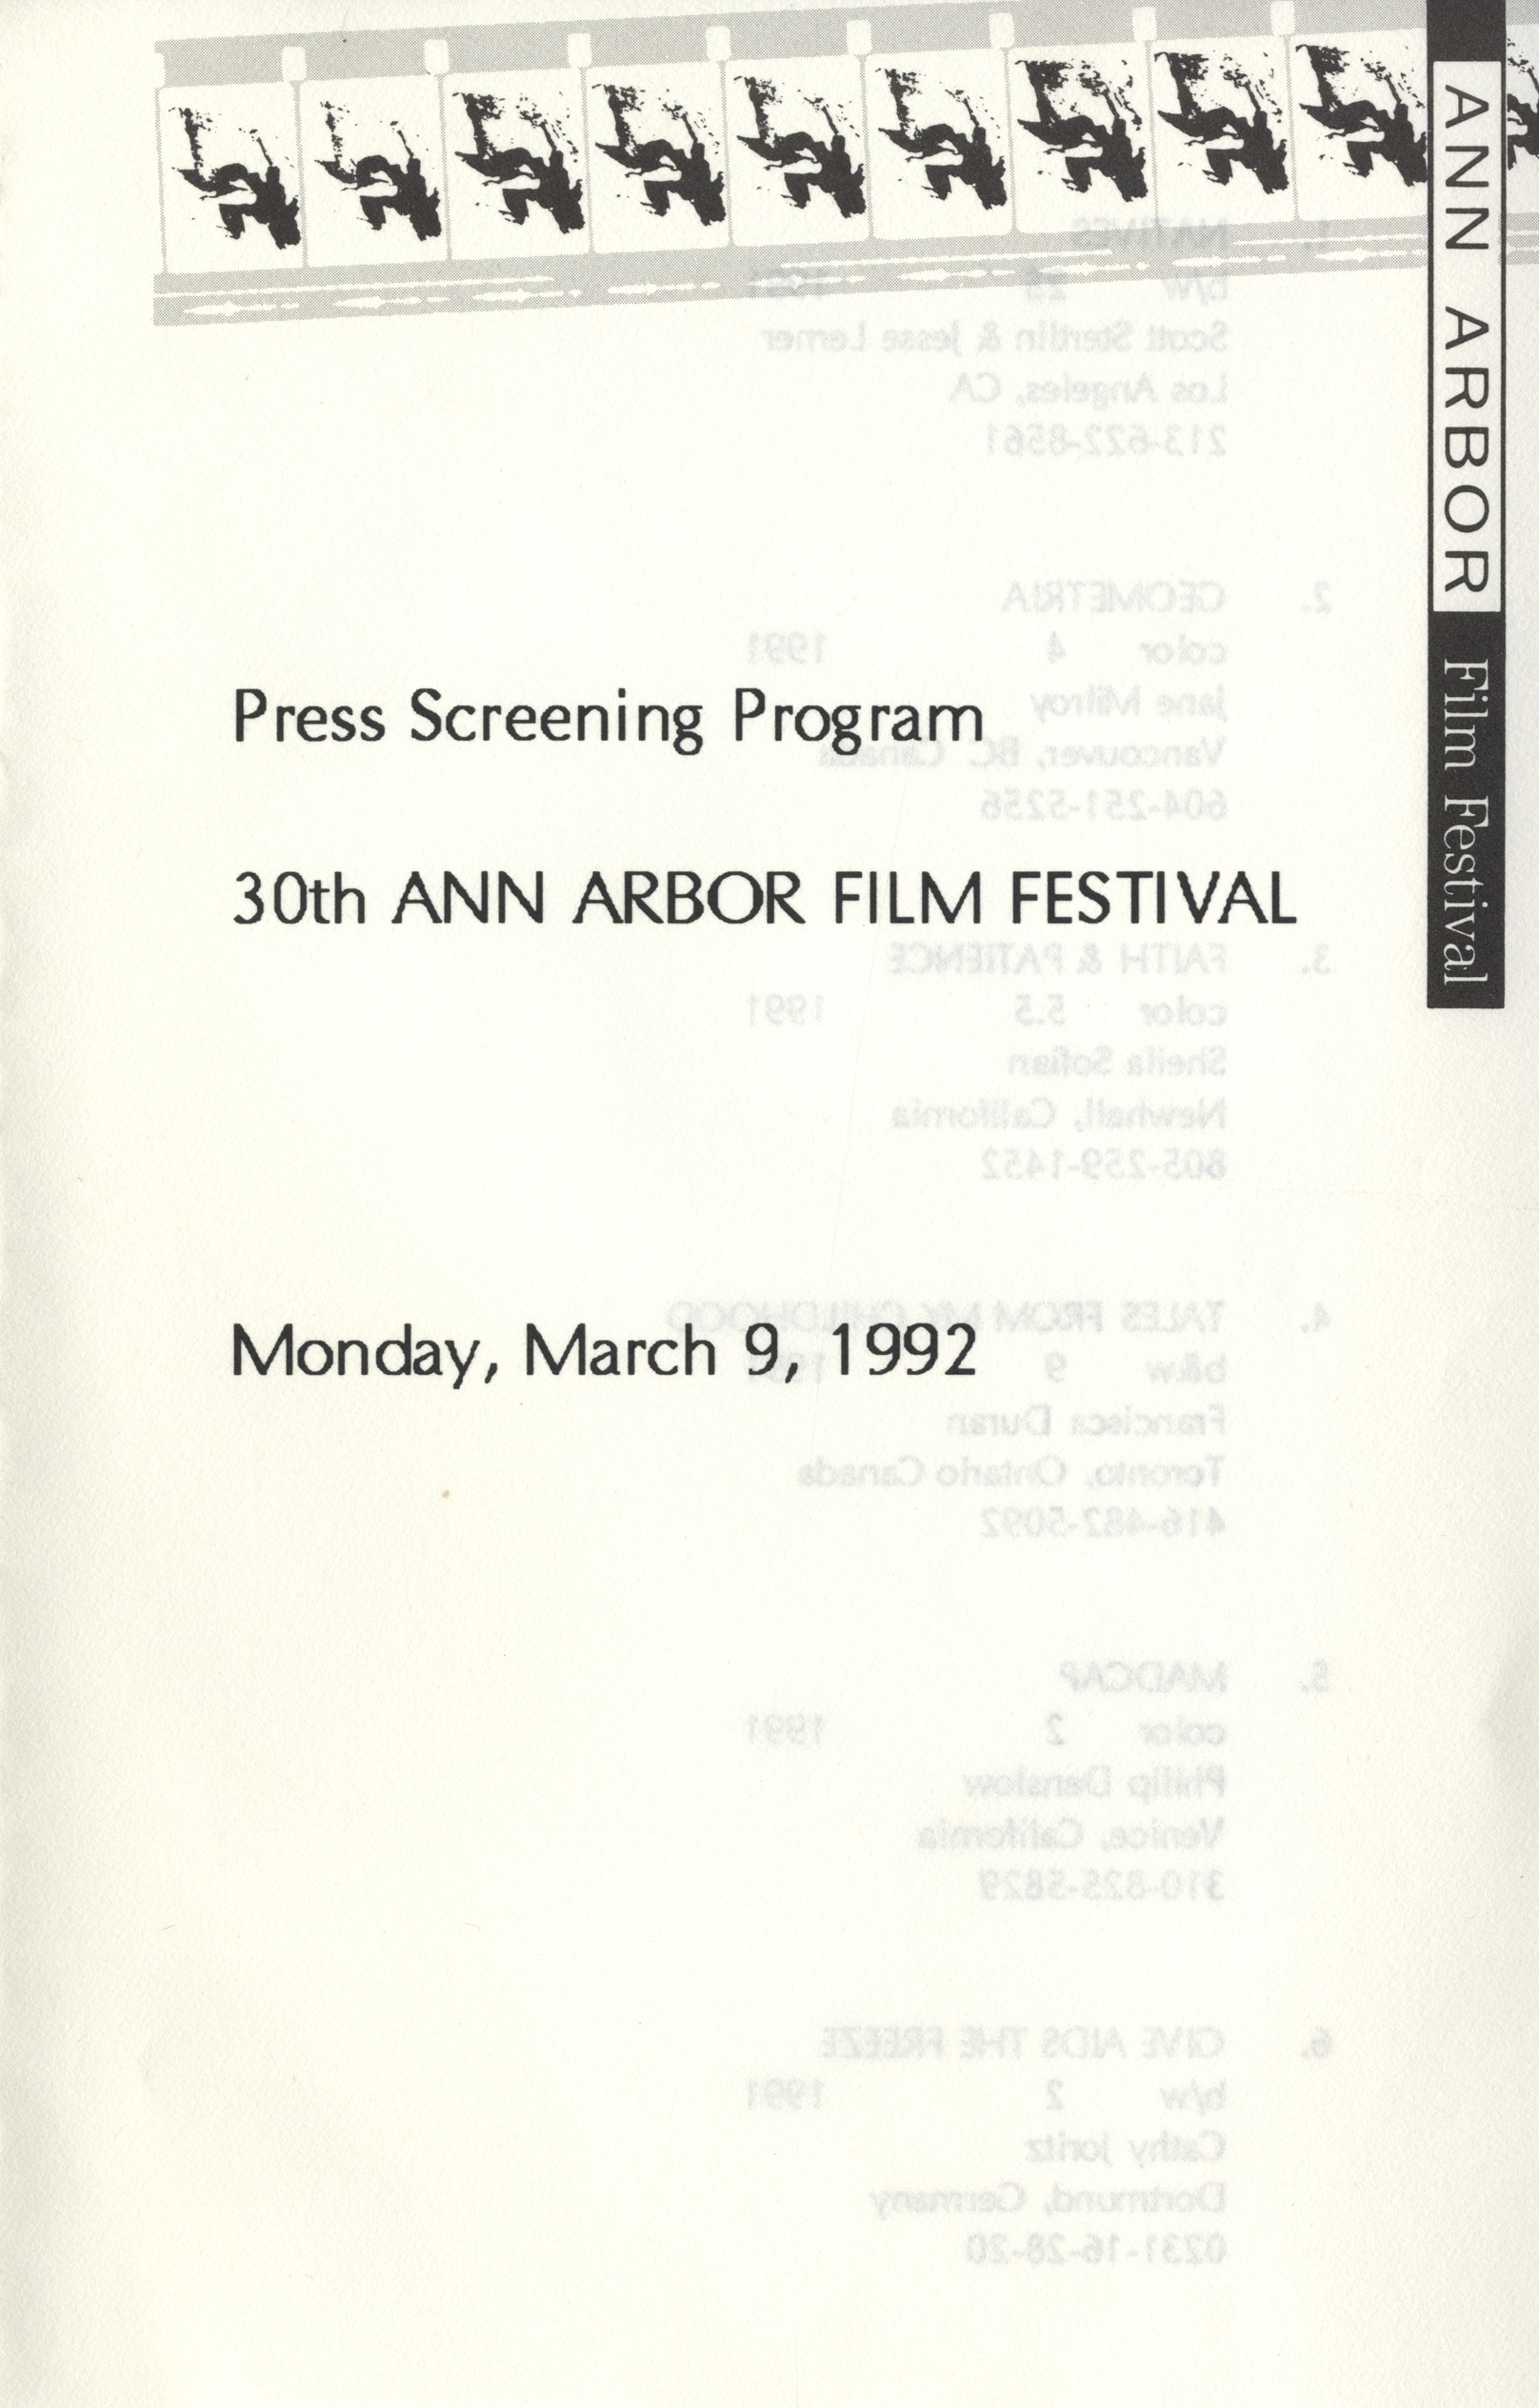 Press Screening Program for 30th Ann Arbor Film Festival image